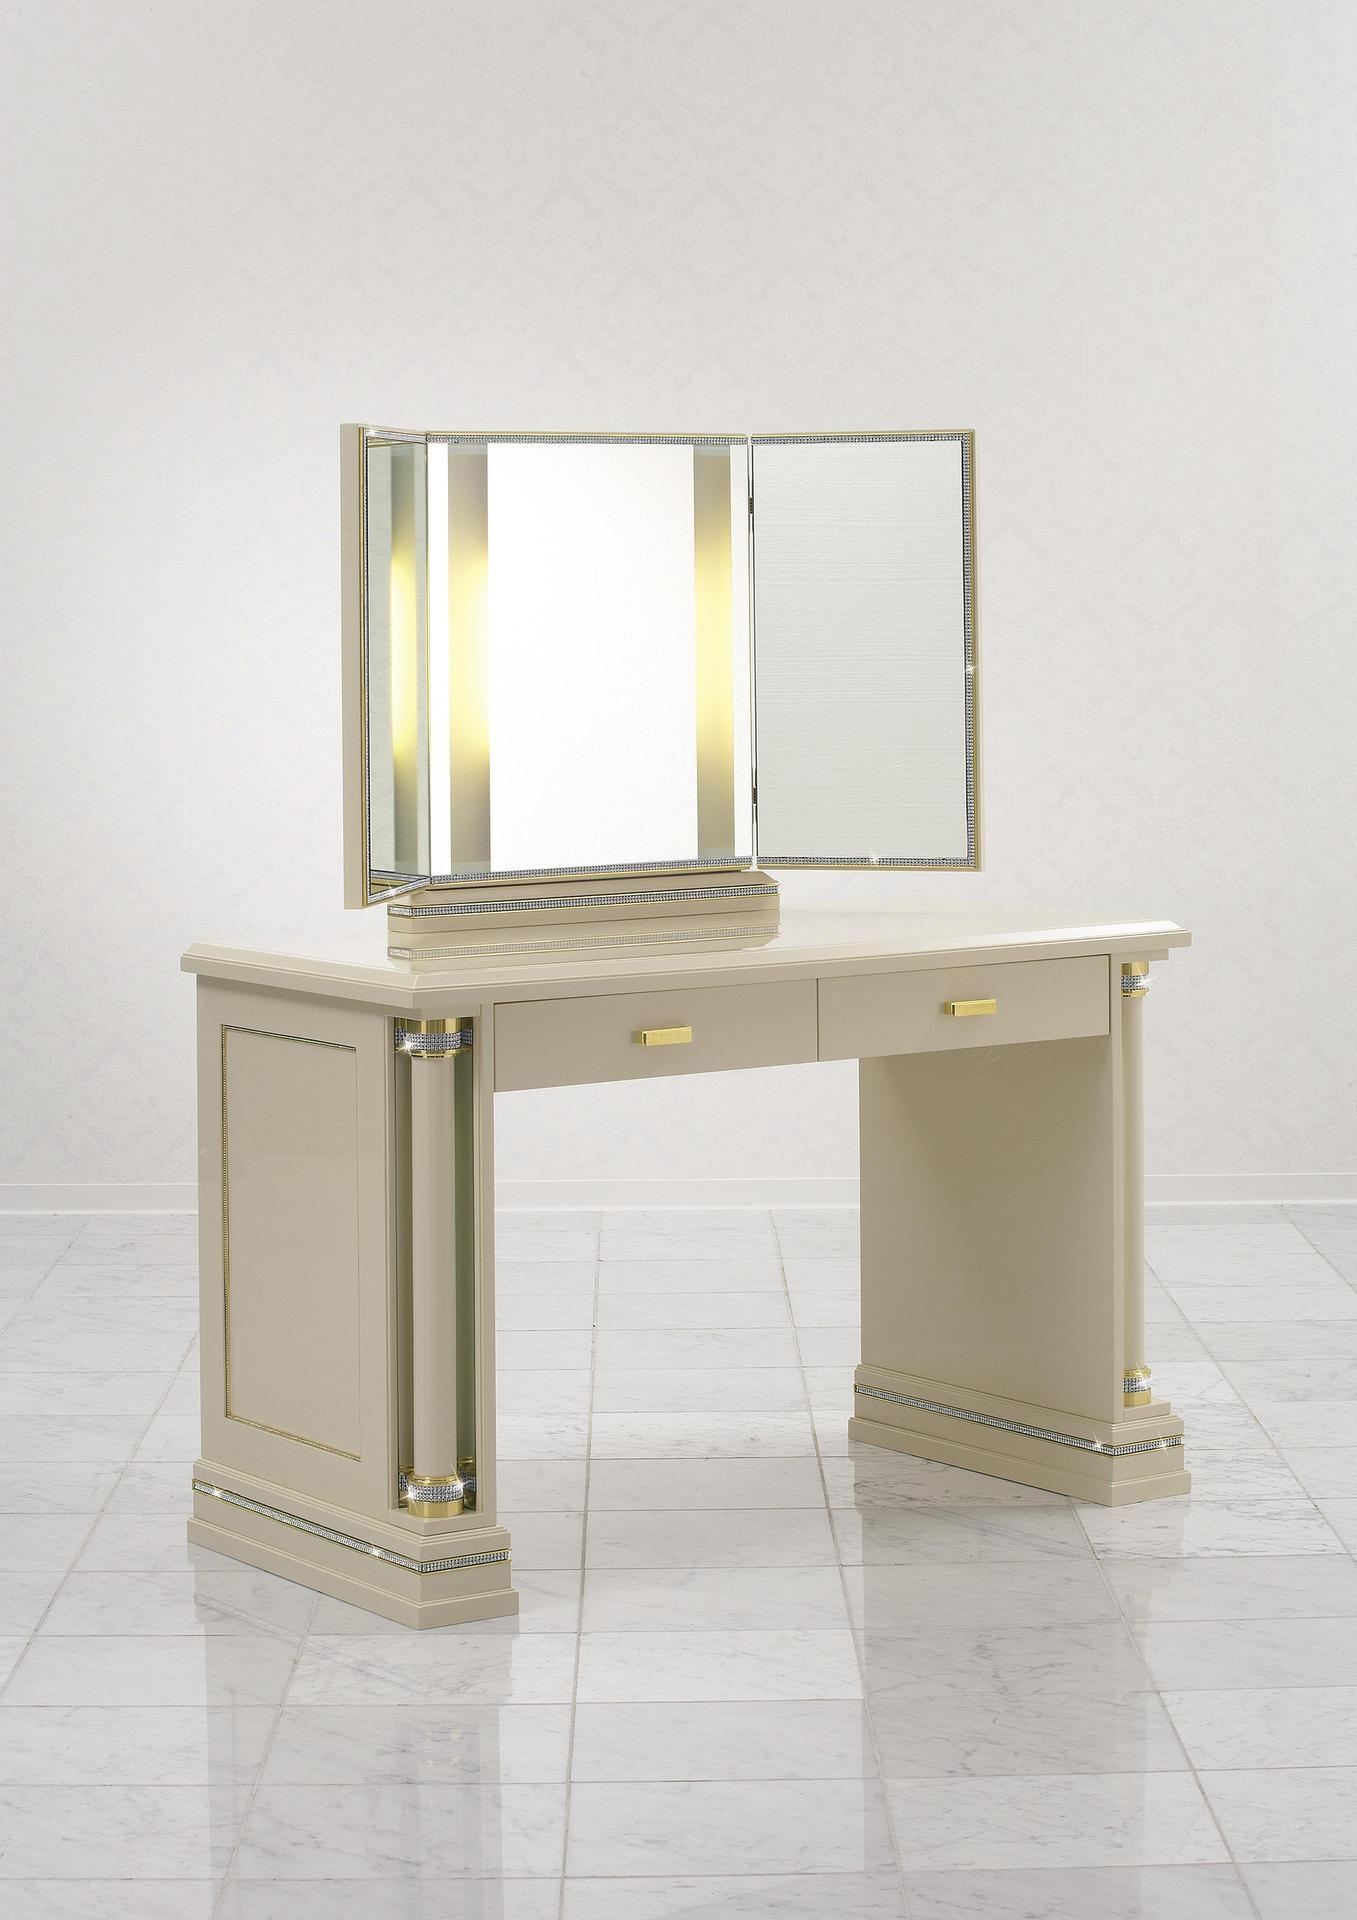 Furniture With Swarovski Crystals – Piato | Finkeldei With Regard To Illuminated Dressing Table Mirror (View 3 of 20)